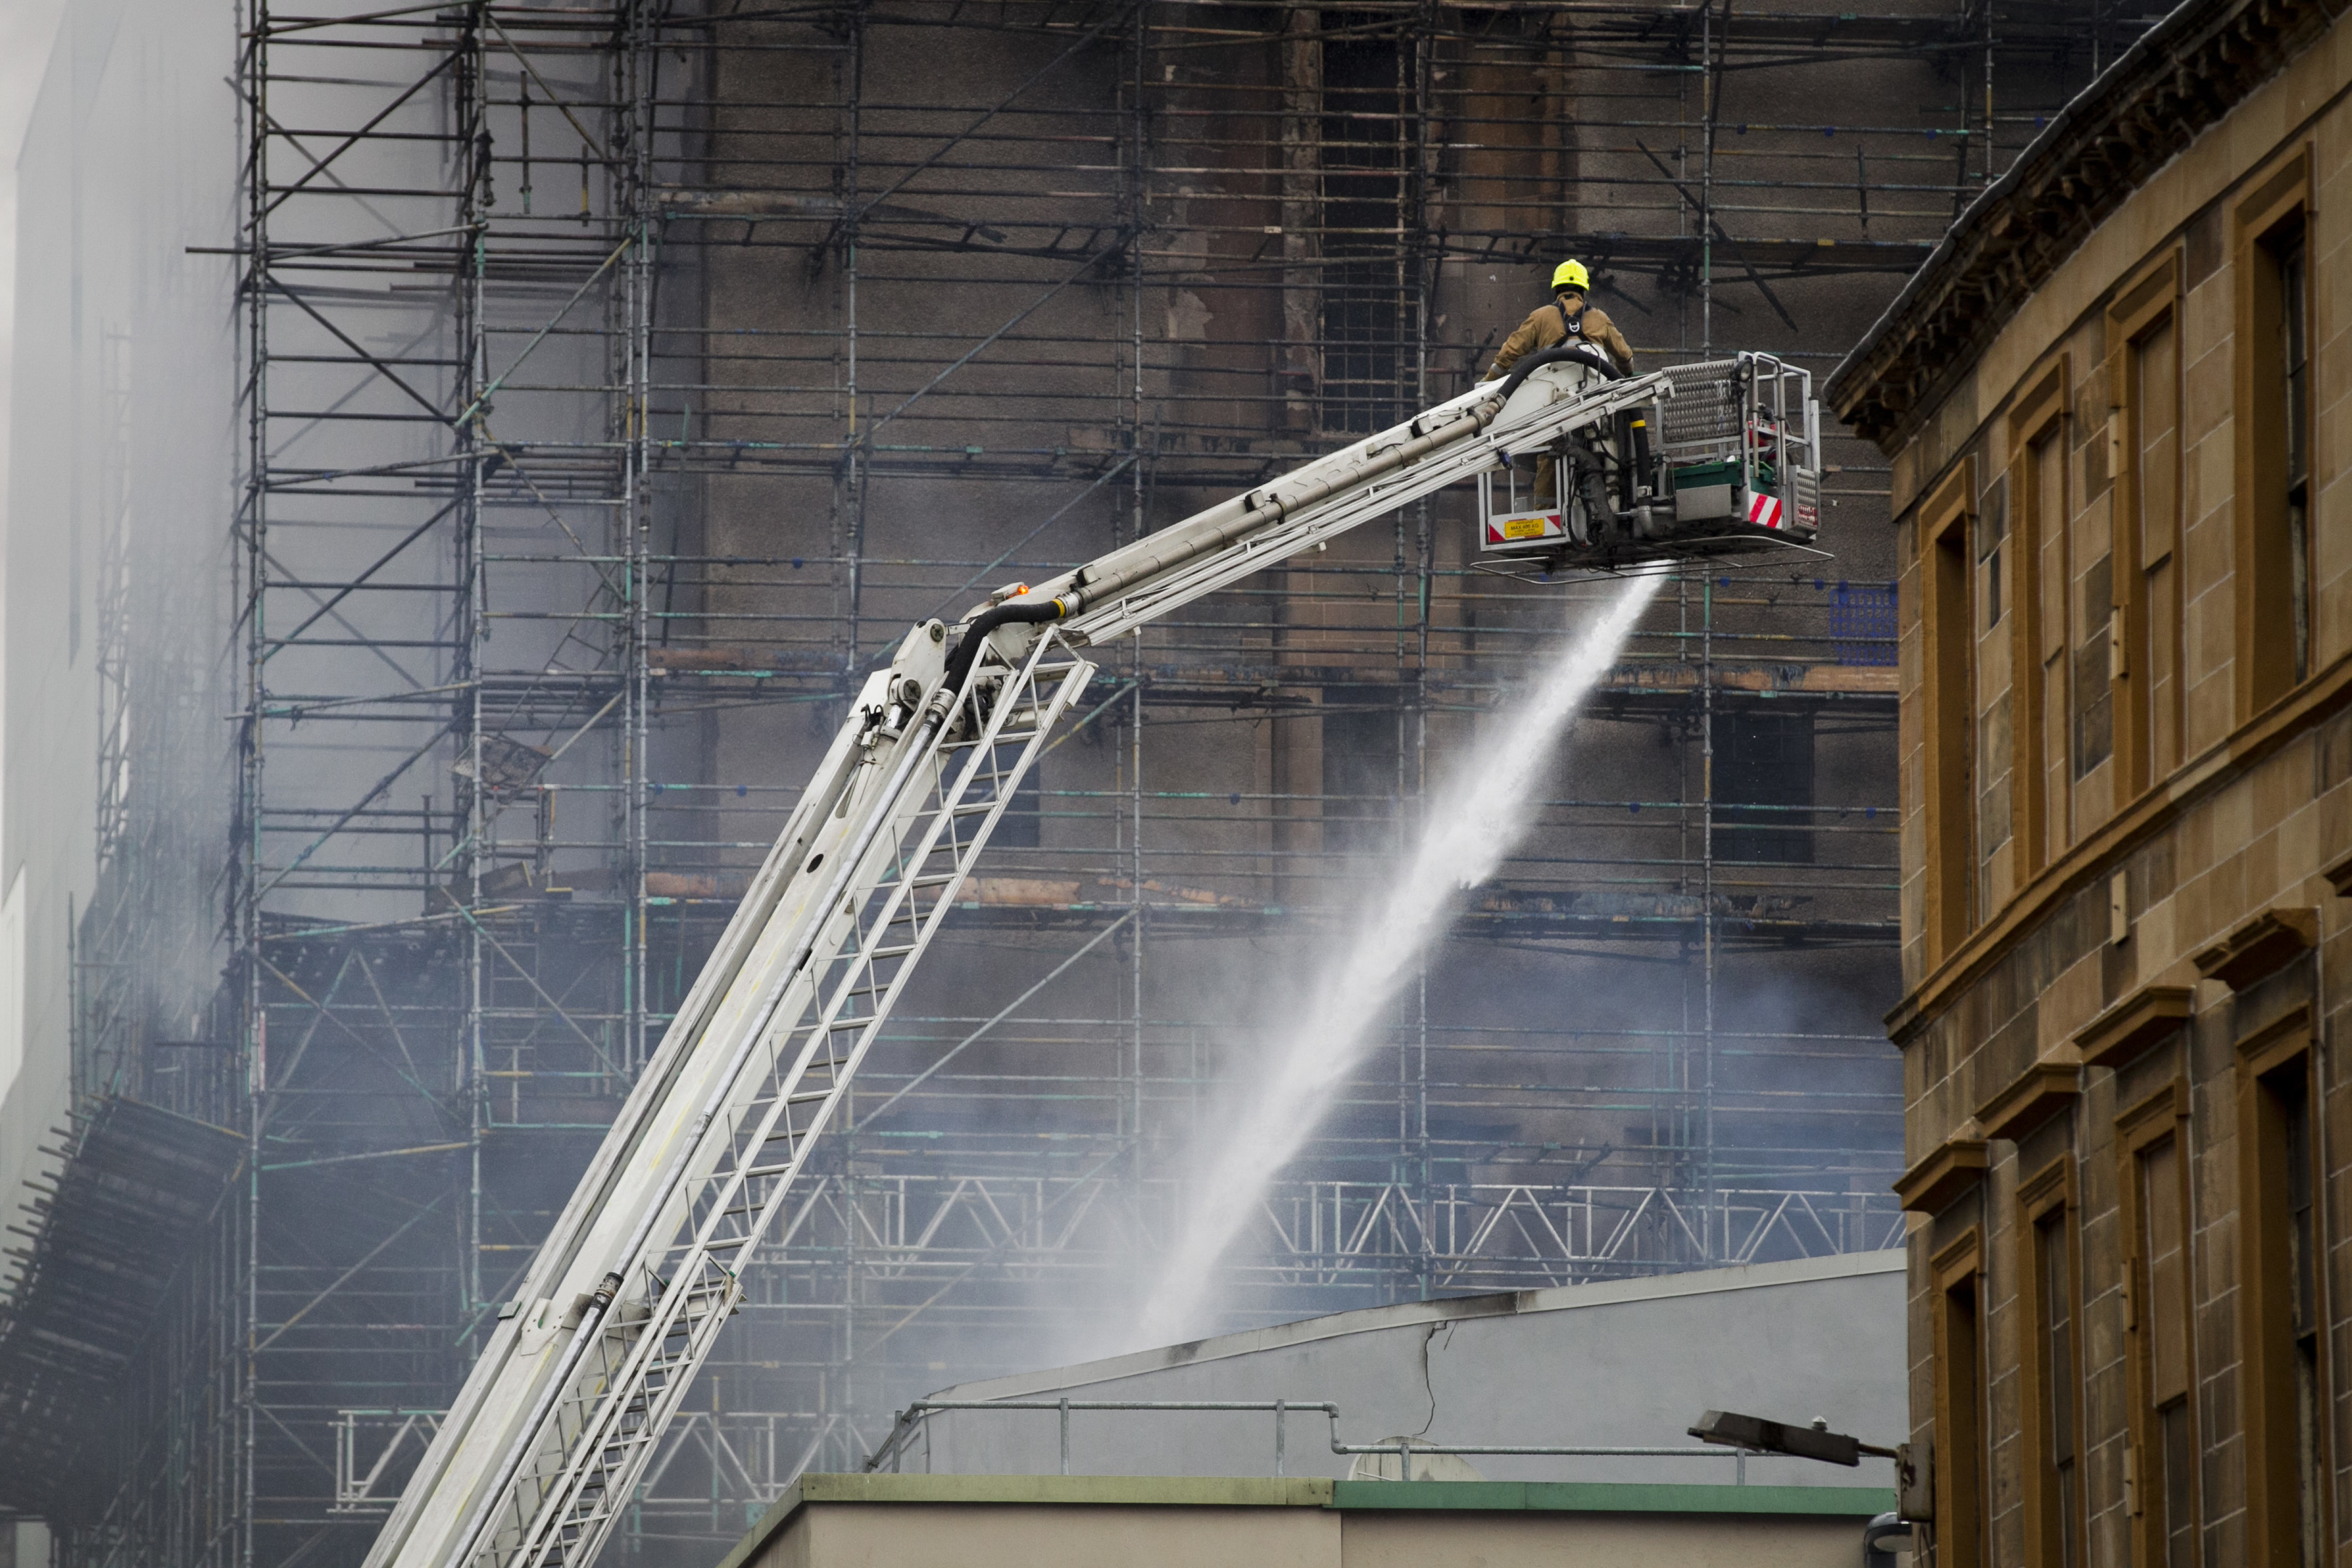 Firefighters put out the fire which destroyed the Glasgow School of Art